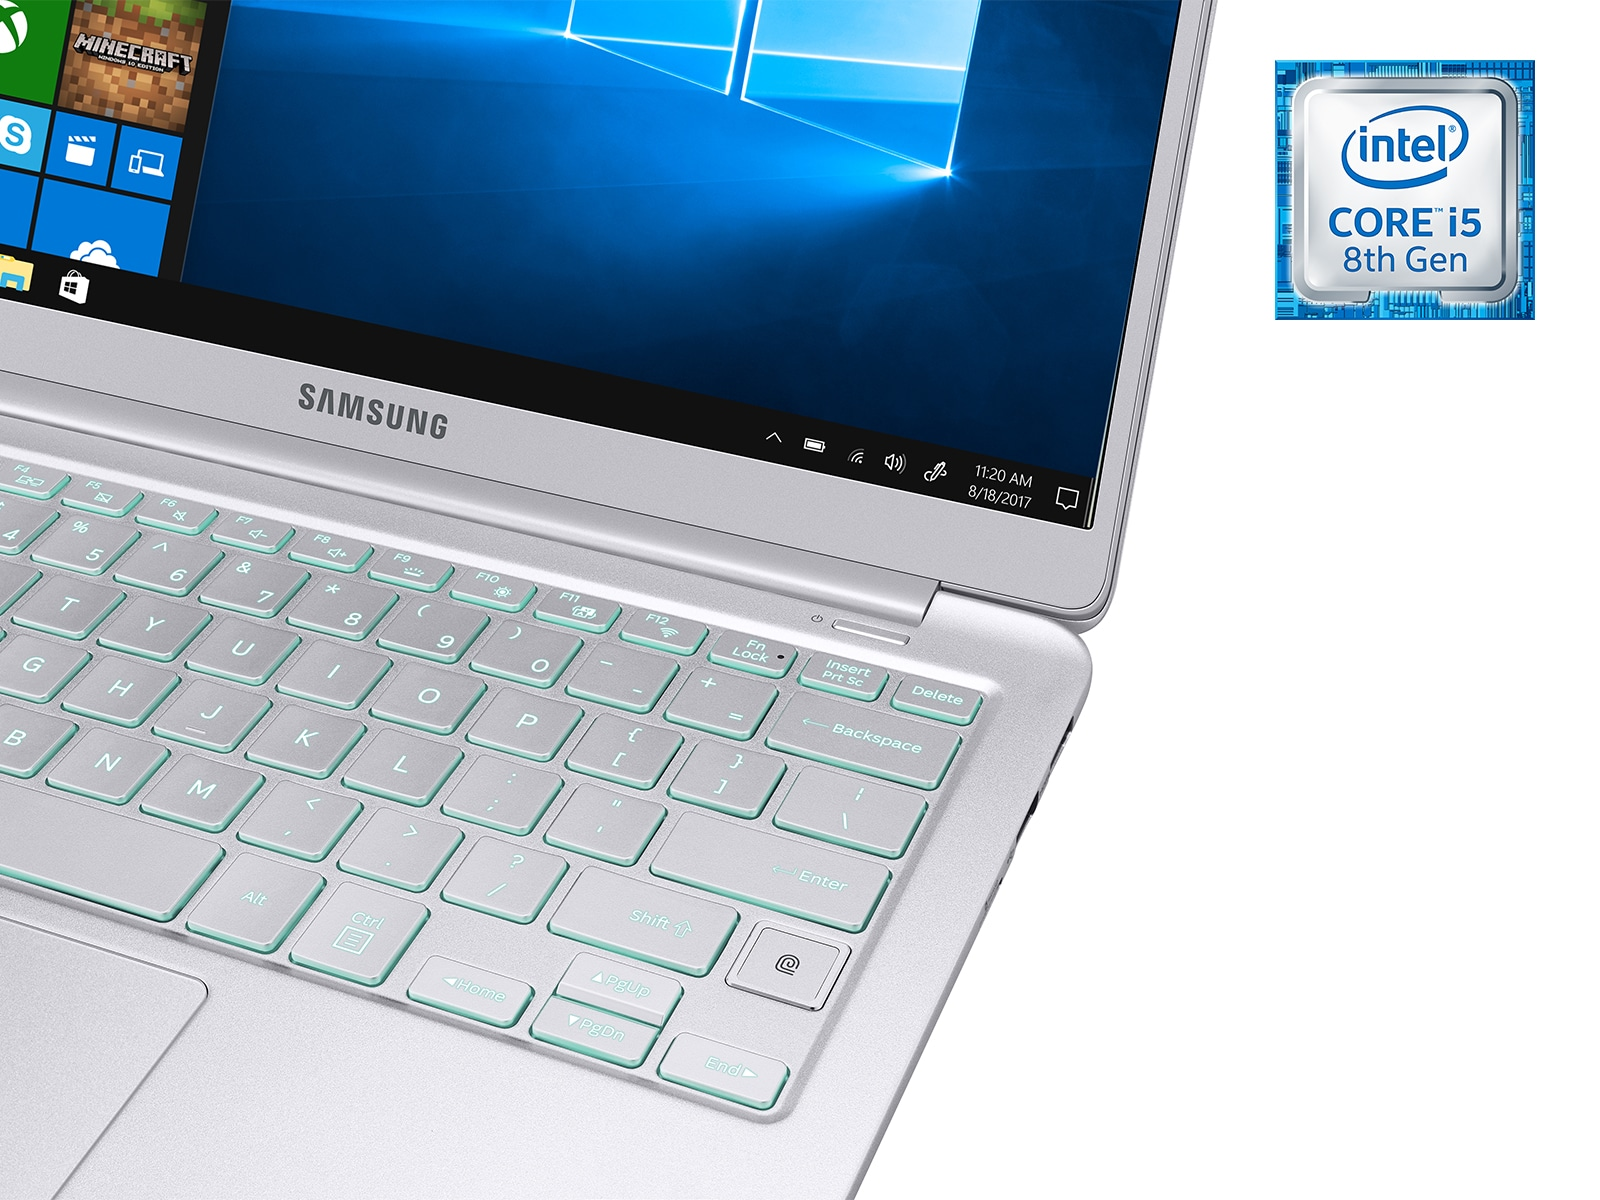 Samsung Notebook 9 NP900X3T-K01US